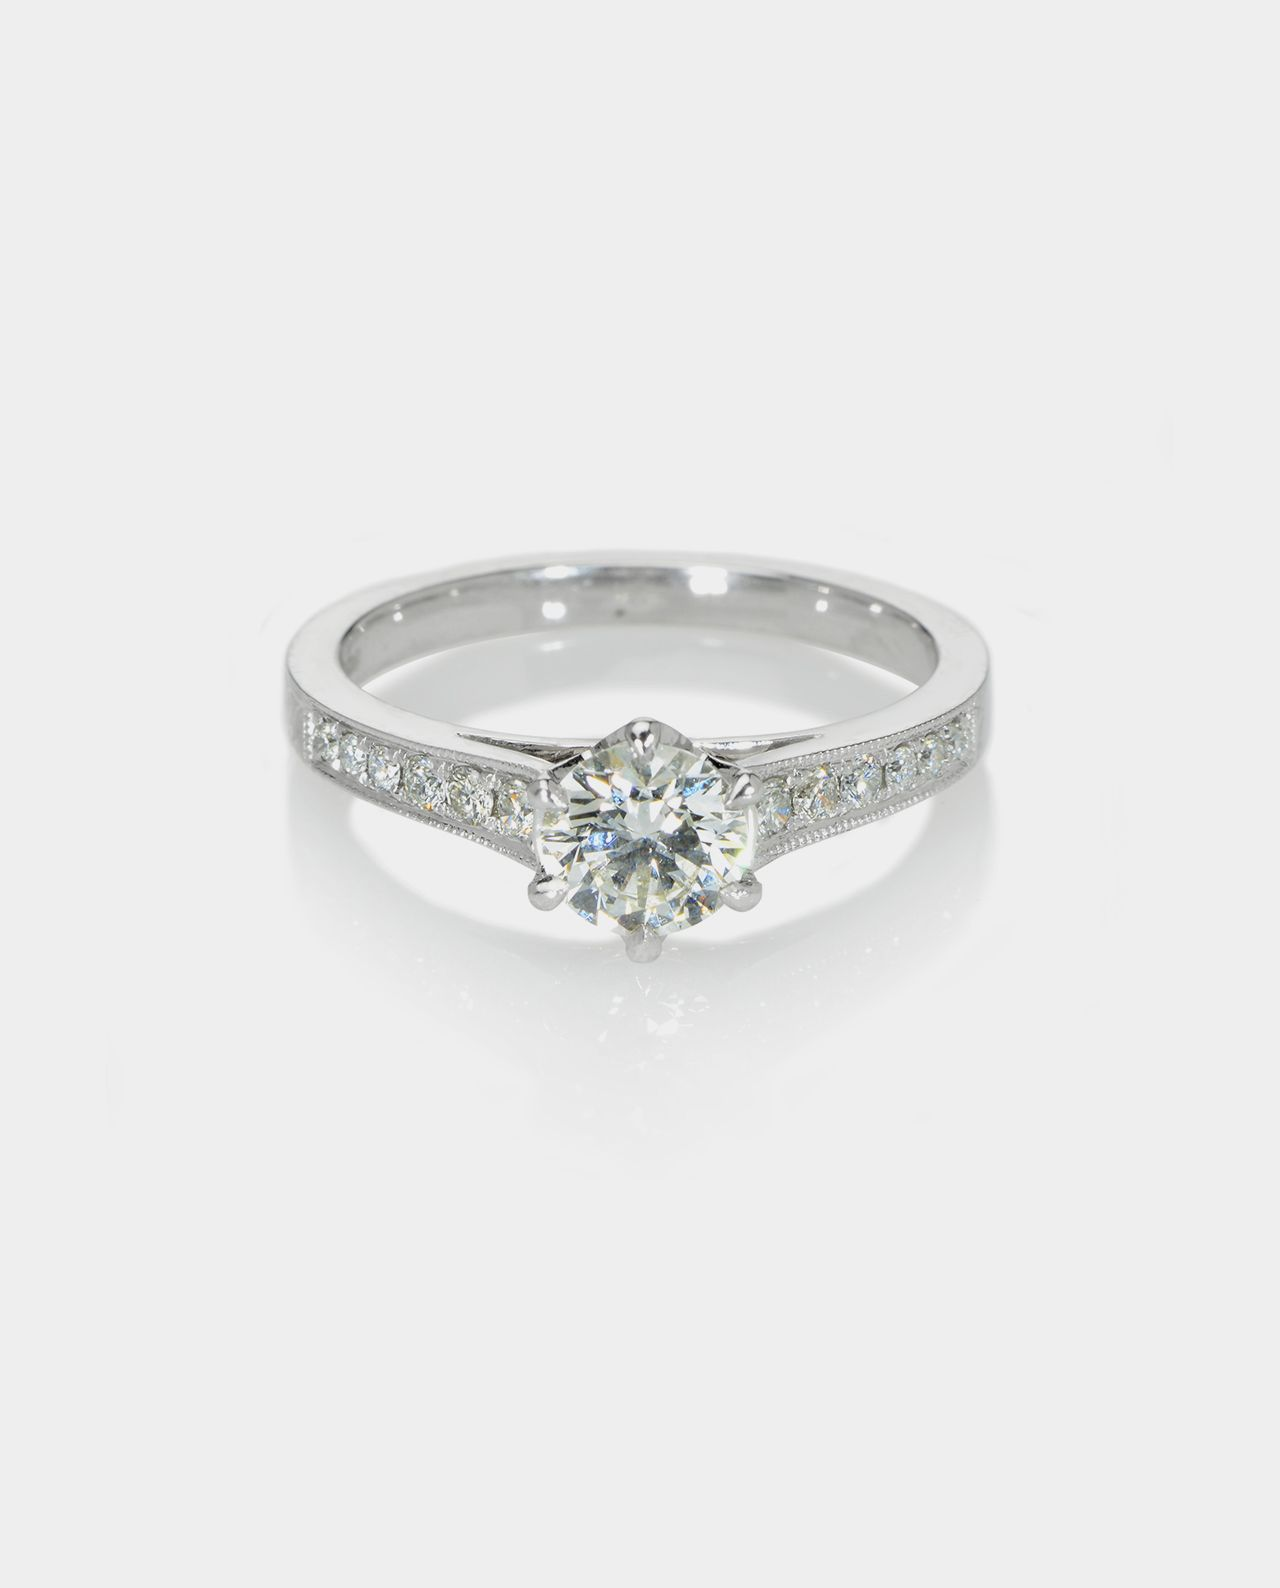 18ct white gold single stone diamond ring with bead-set shoulders.